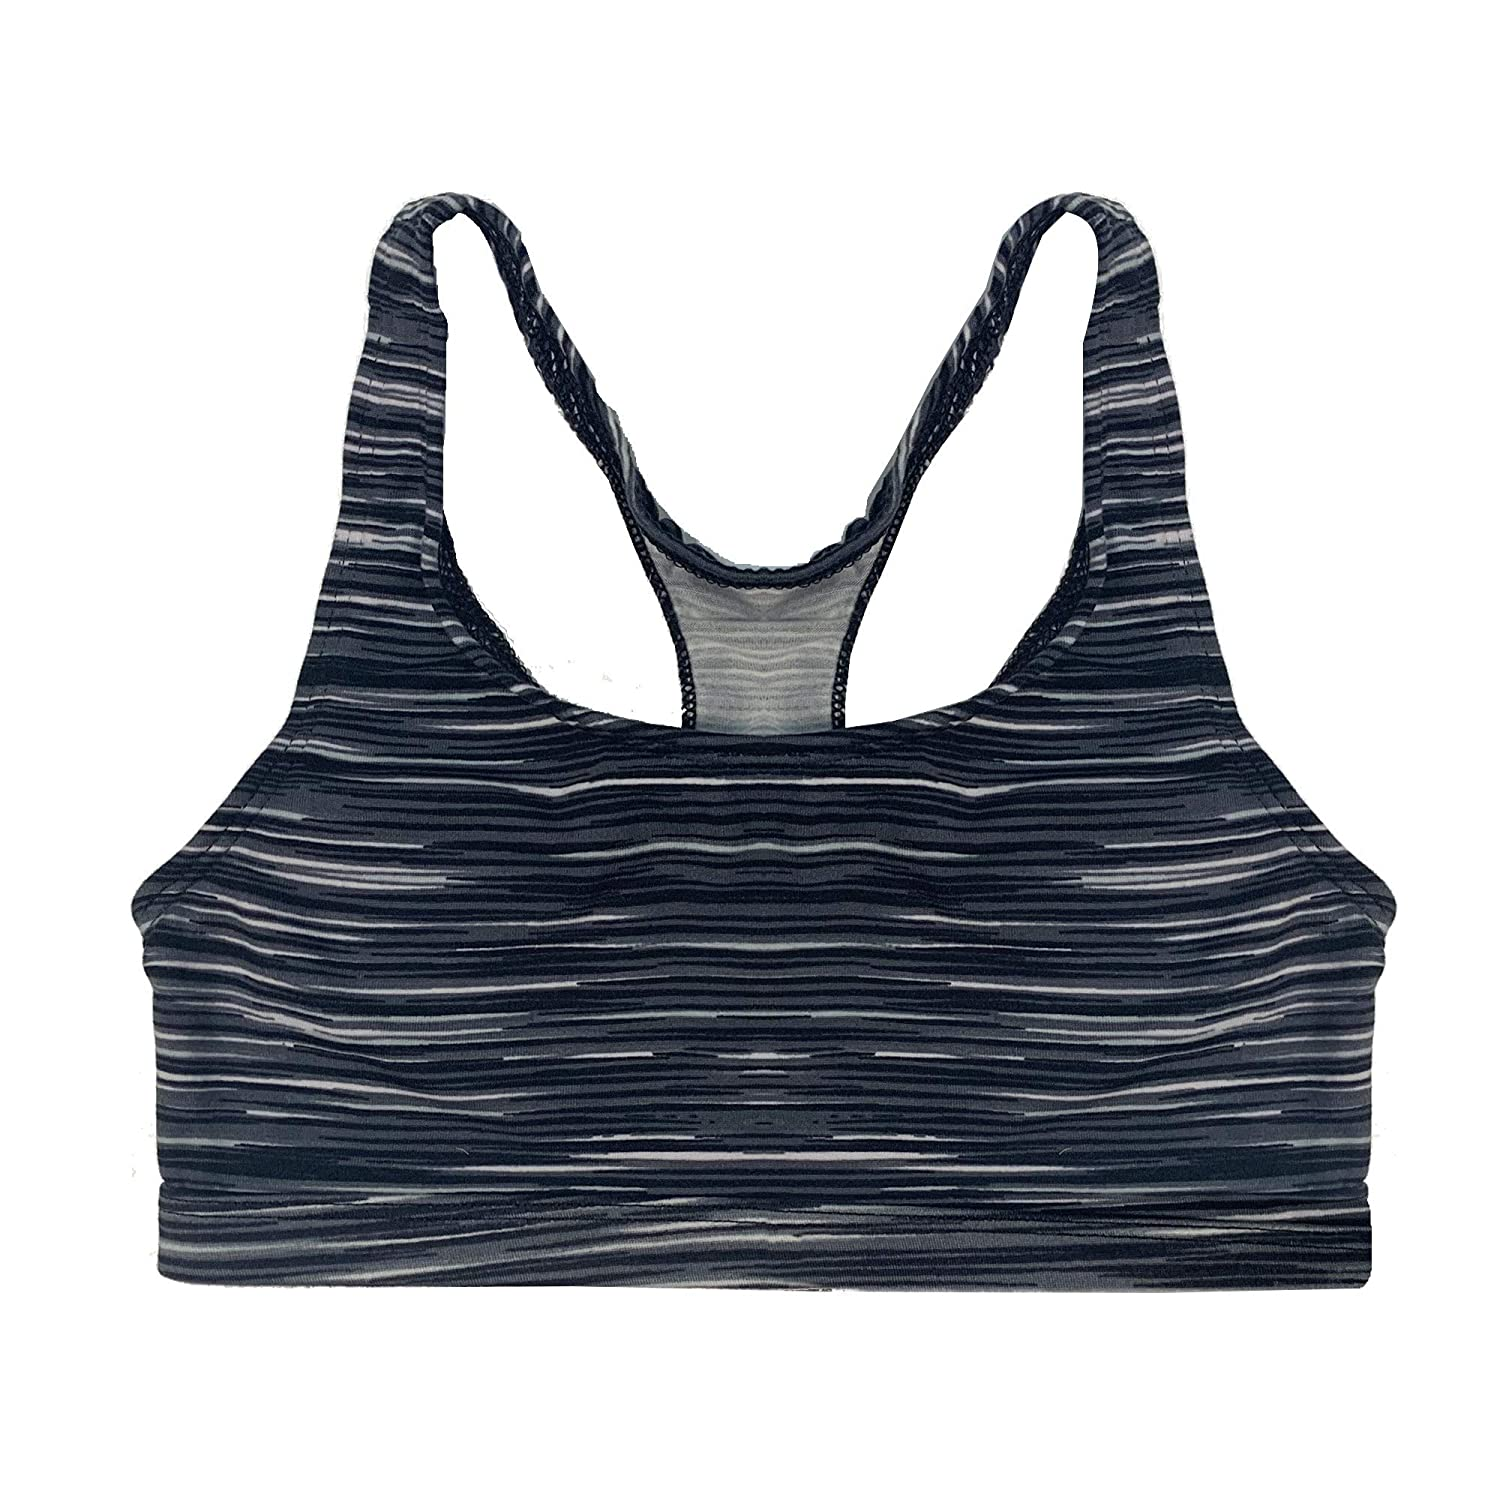 Popular Girls Print and Solid Racerback Sports Bra 2 Pack